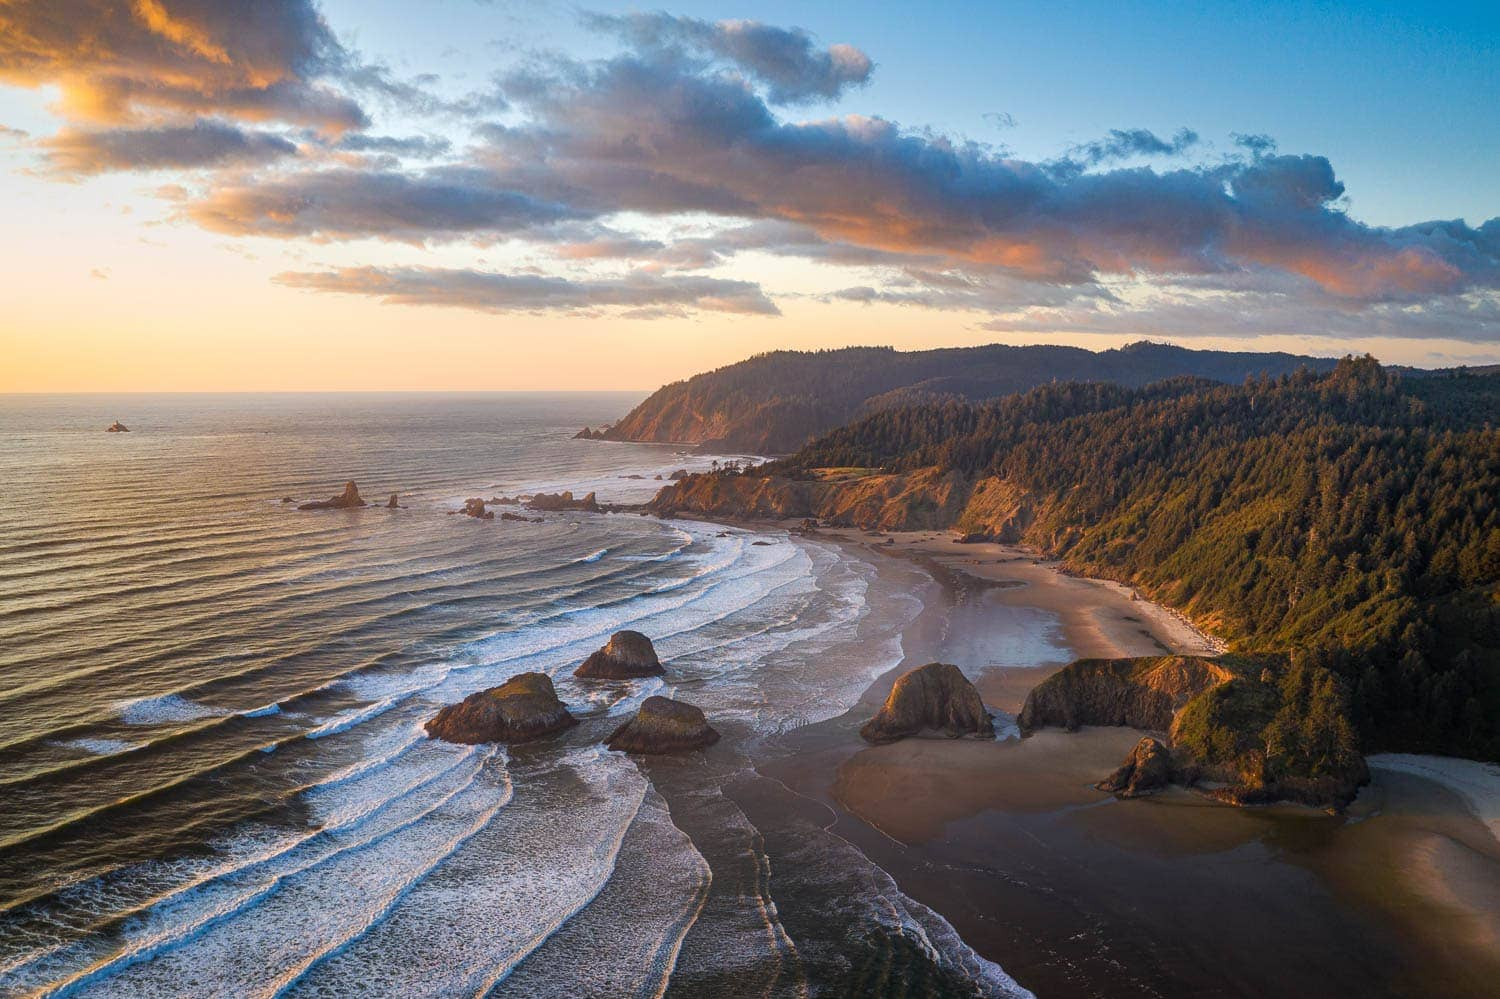 Aerial photo of the rugged Oregon Coast at sunset